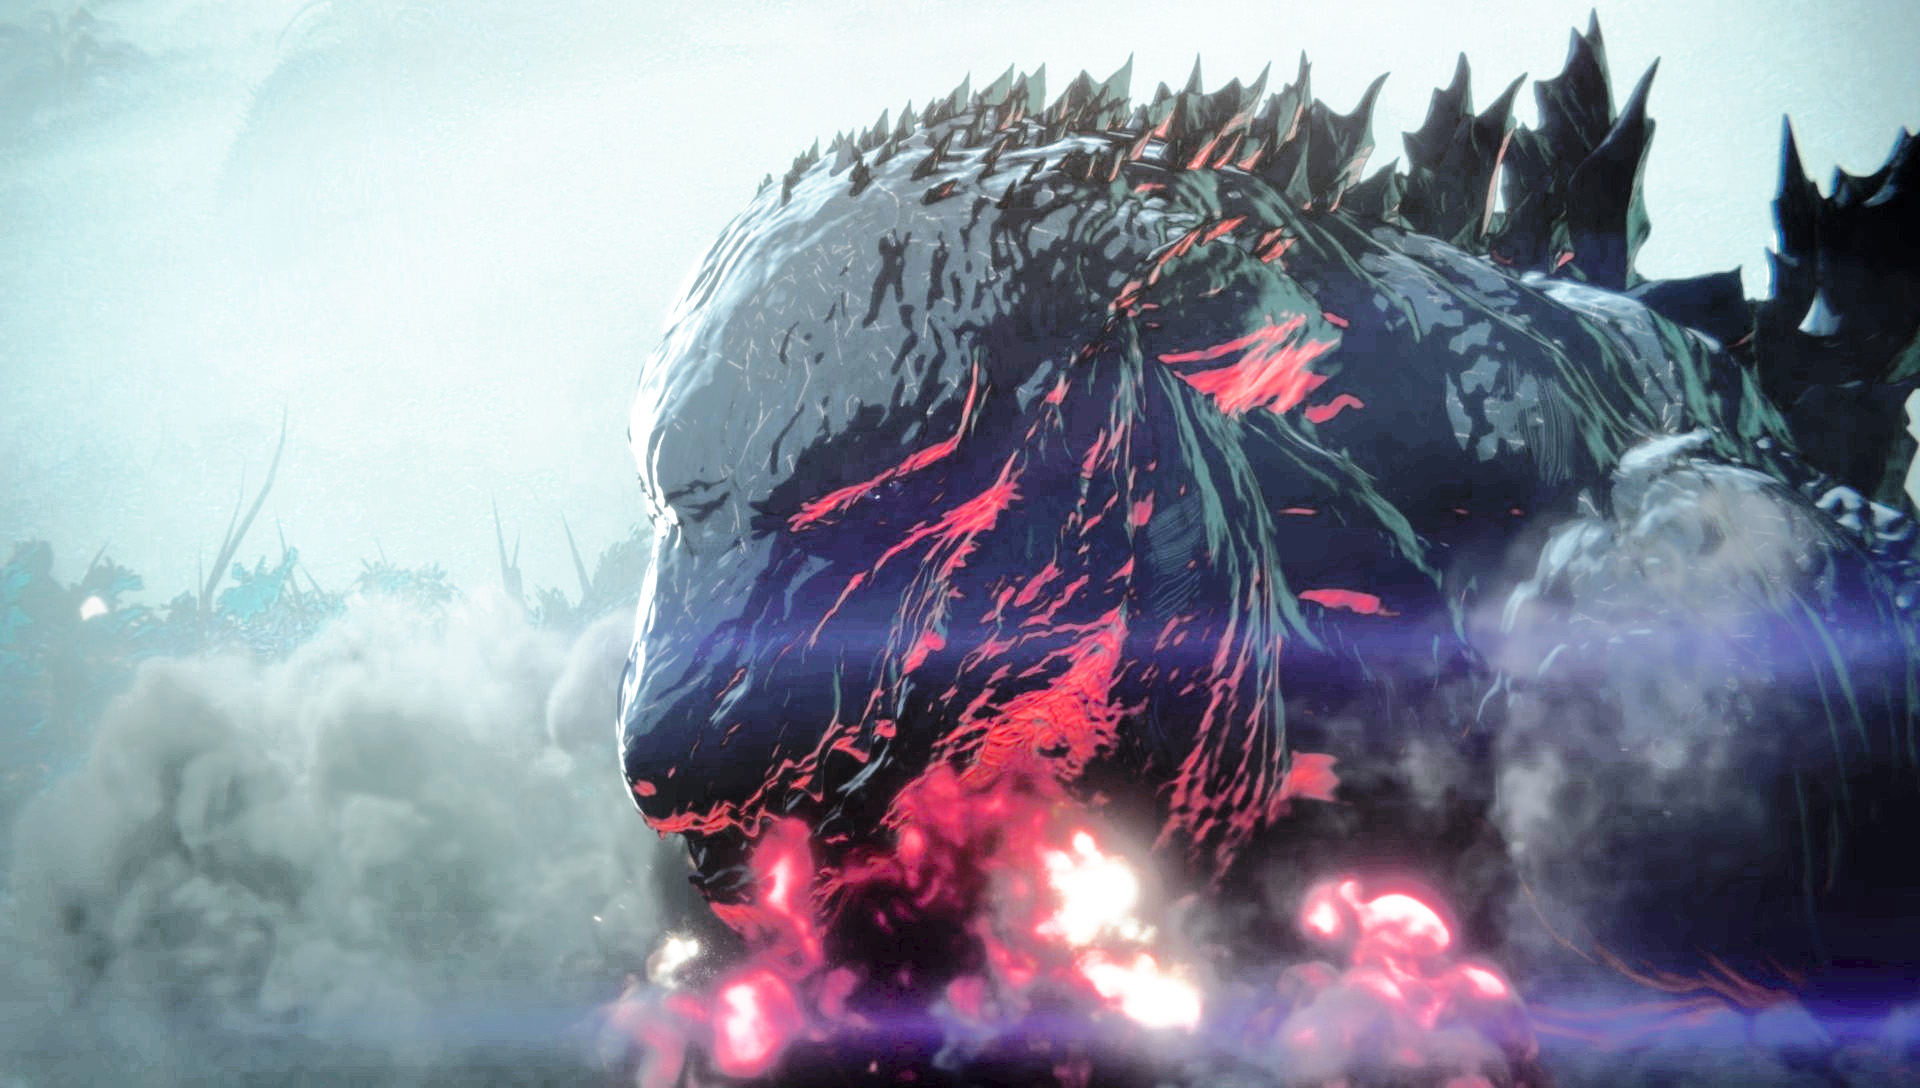 godzilla-anime-trailer-english-1.jpg